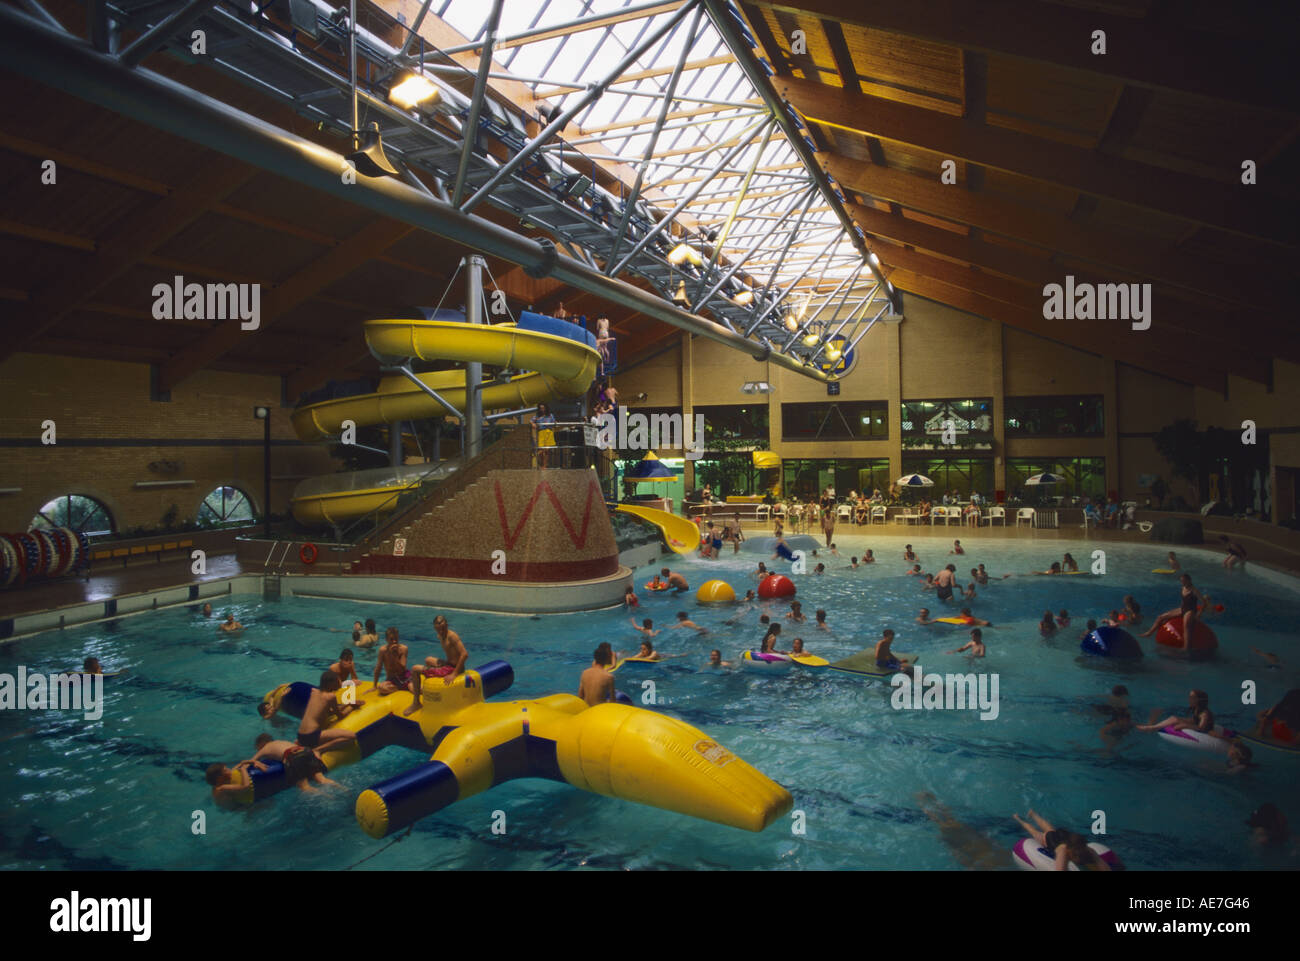 Beach Splash Kingfisher Leisure Centre Surrey Full Hd Maps Locations Another World